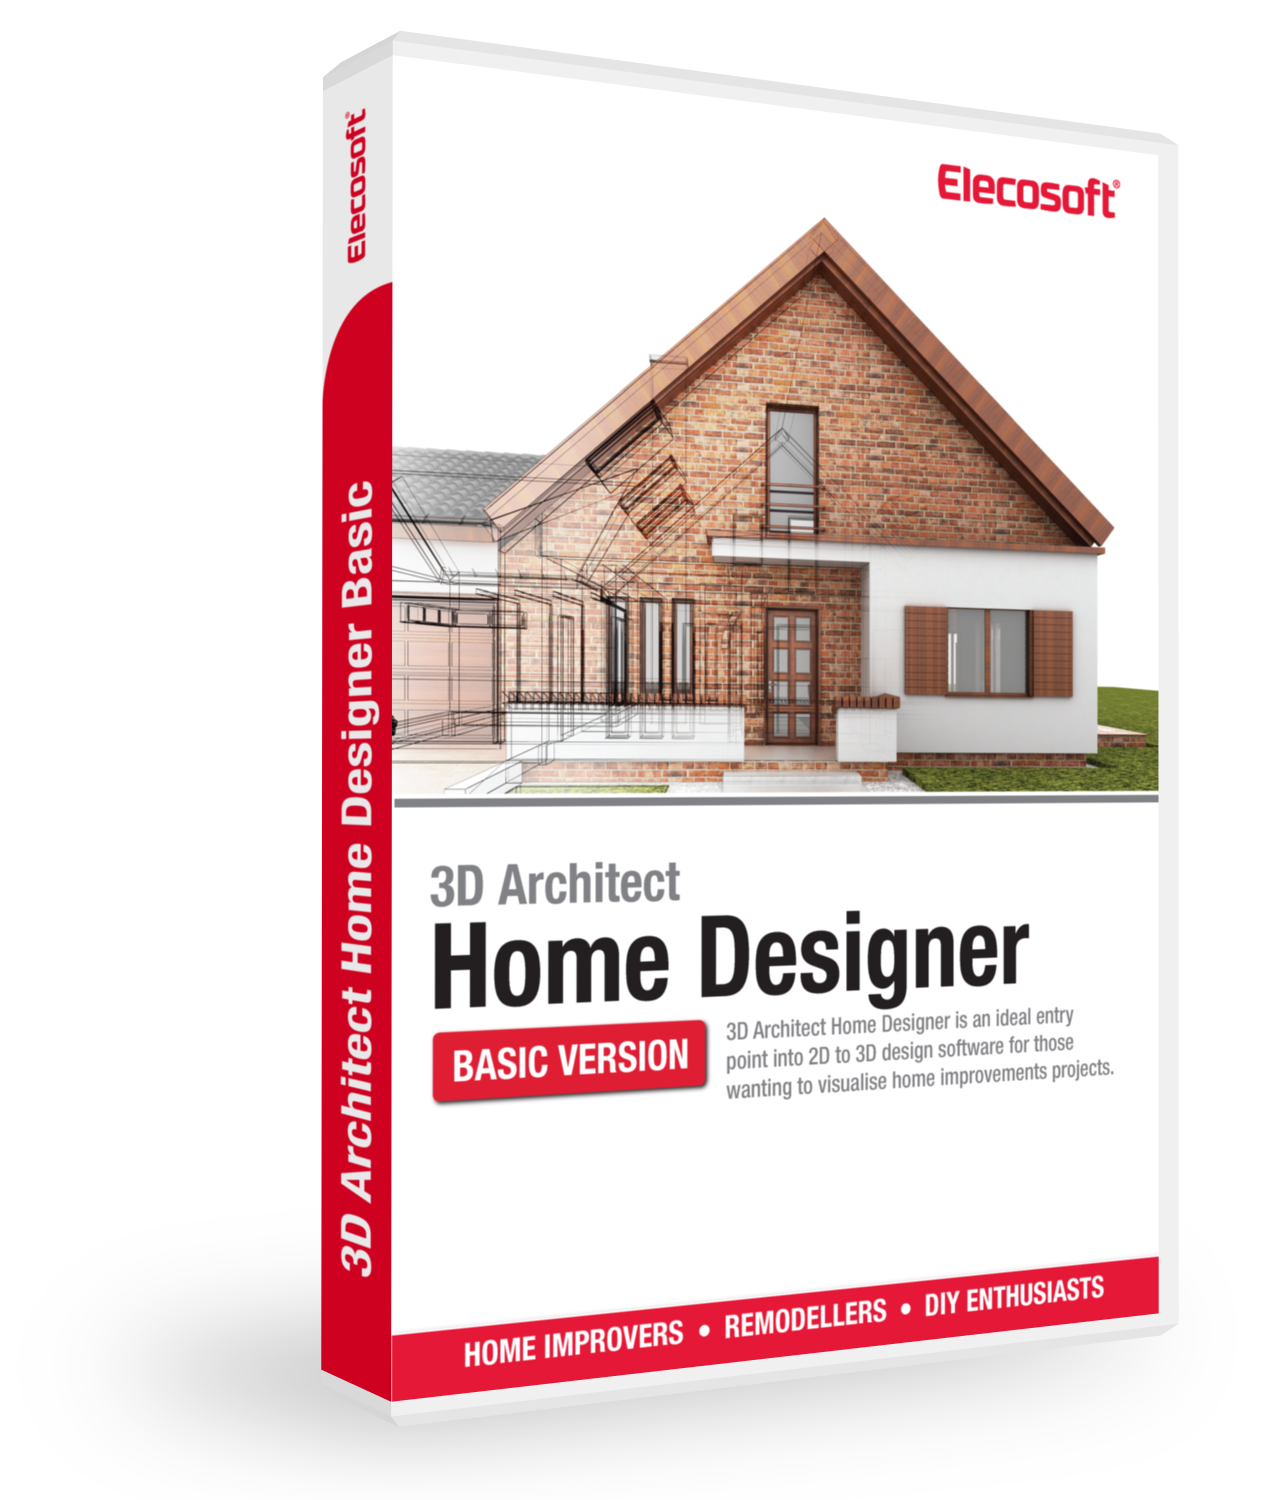 3d floor plan software for diy home projects Easy house design software